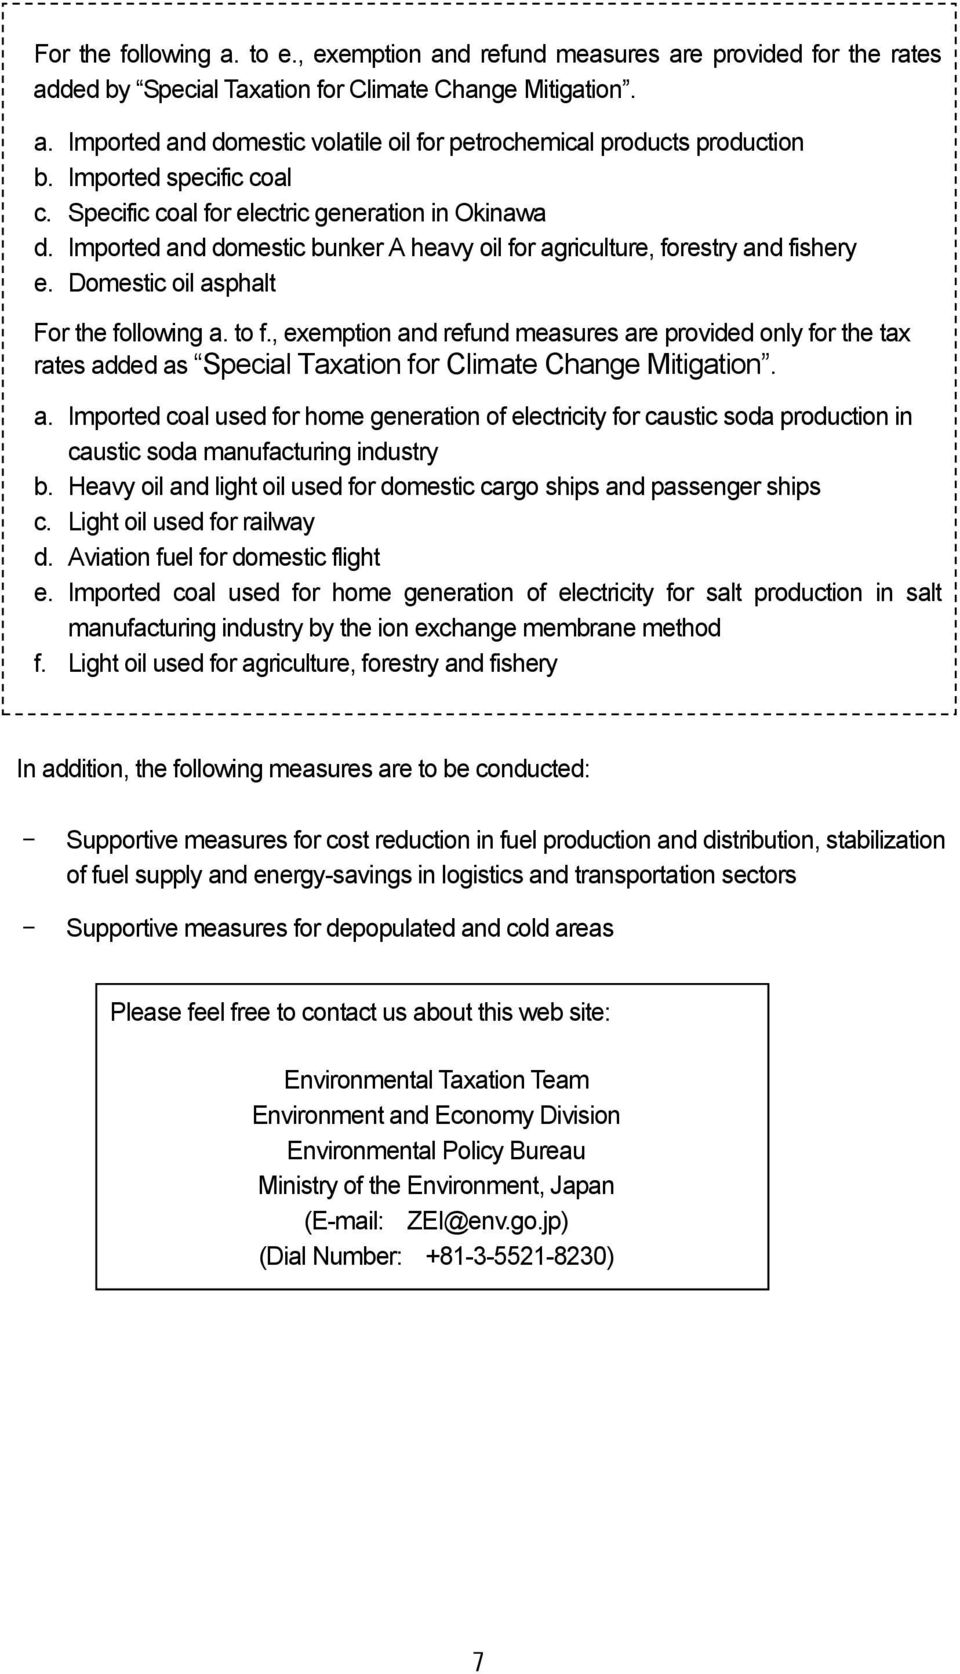 Domestic oil asphalt For the following a. to f., exemption and refund measures are provided only for the tax rates added as Special Taxation for Climate Change Mitigation. a. Imported coal used for home generation of electricity for caustic soda production in caustic soda manufacturing industry b.